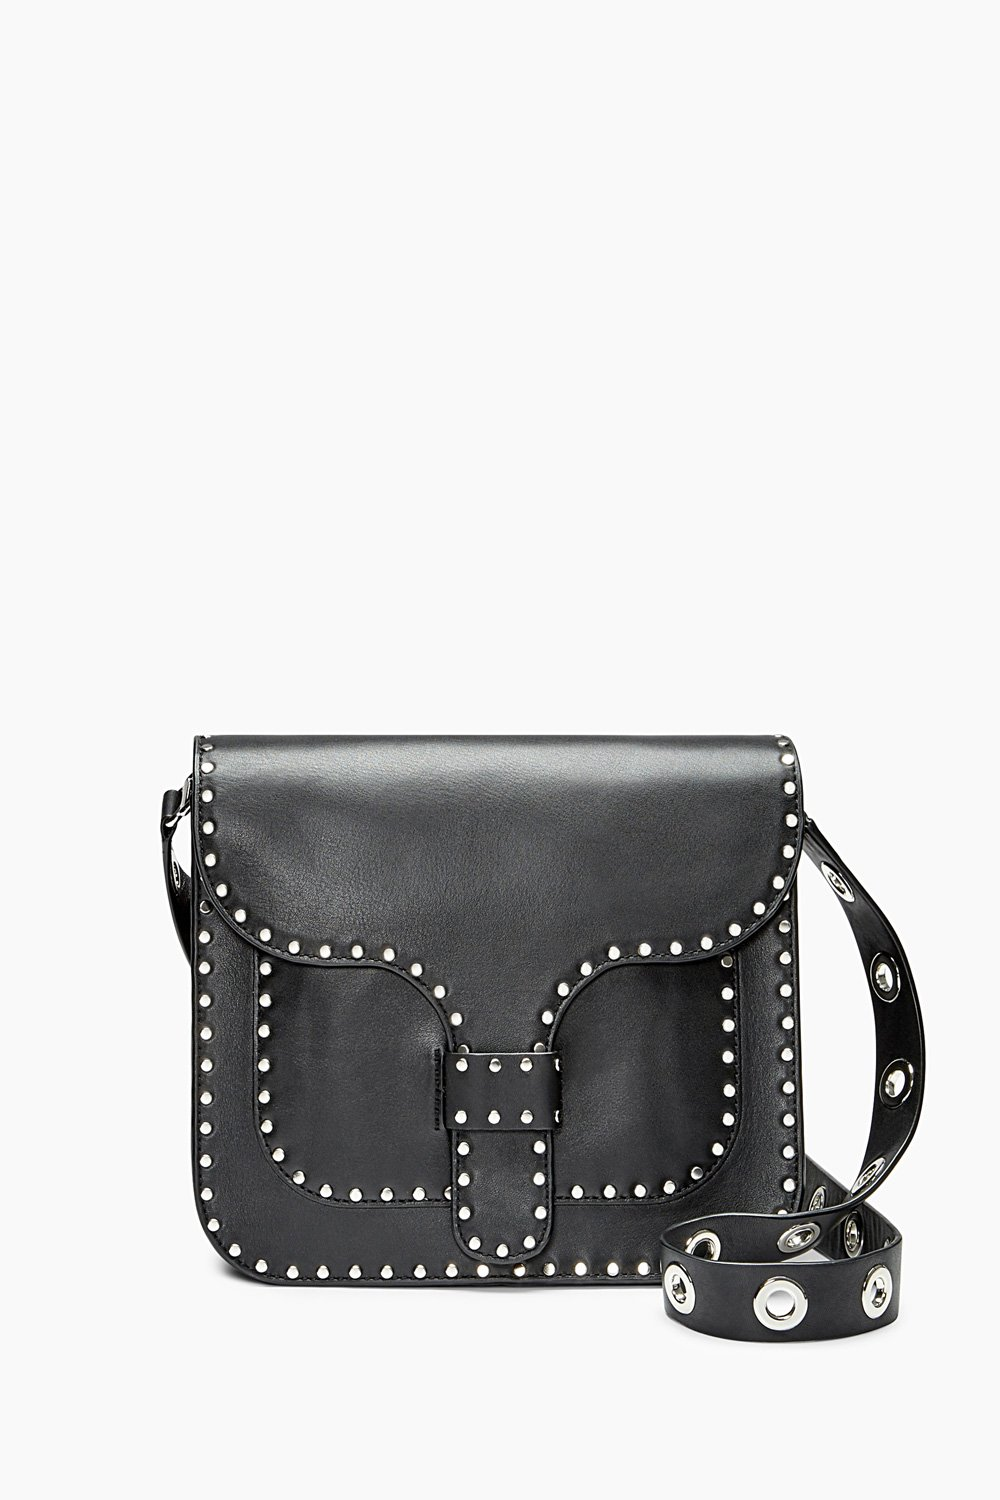 fashion newest lace up in REBECCA MINKOFF Black Midnighter Large Messenger Bag $345 NEW ...